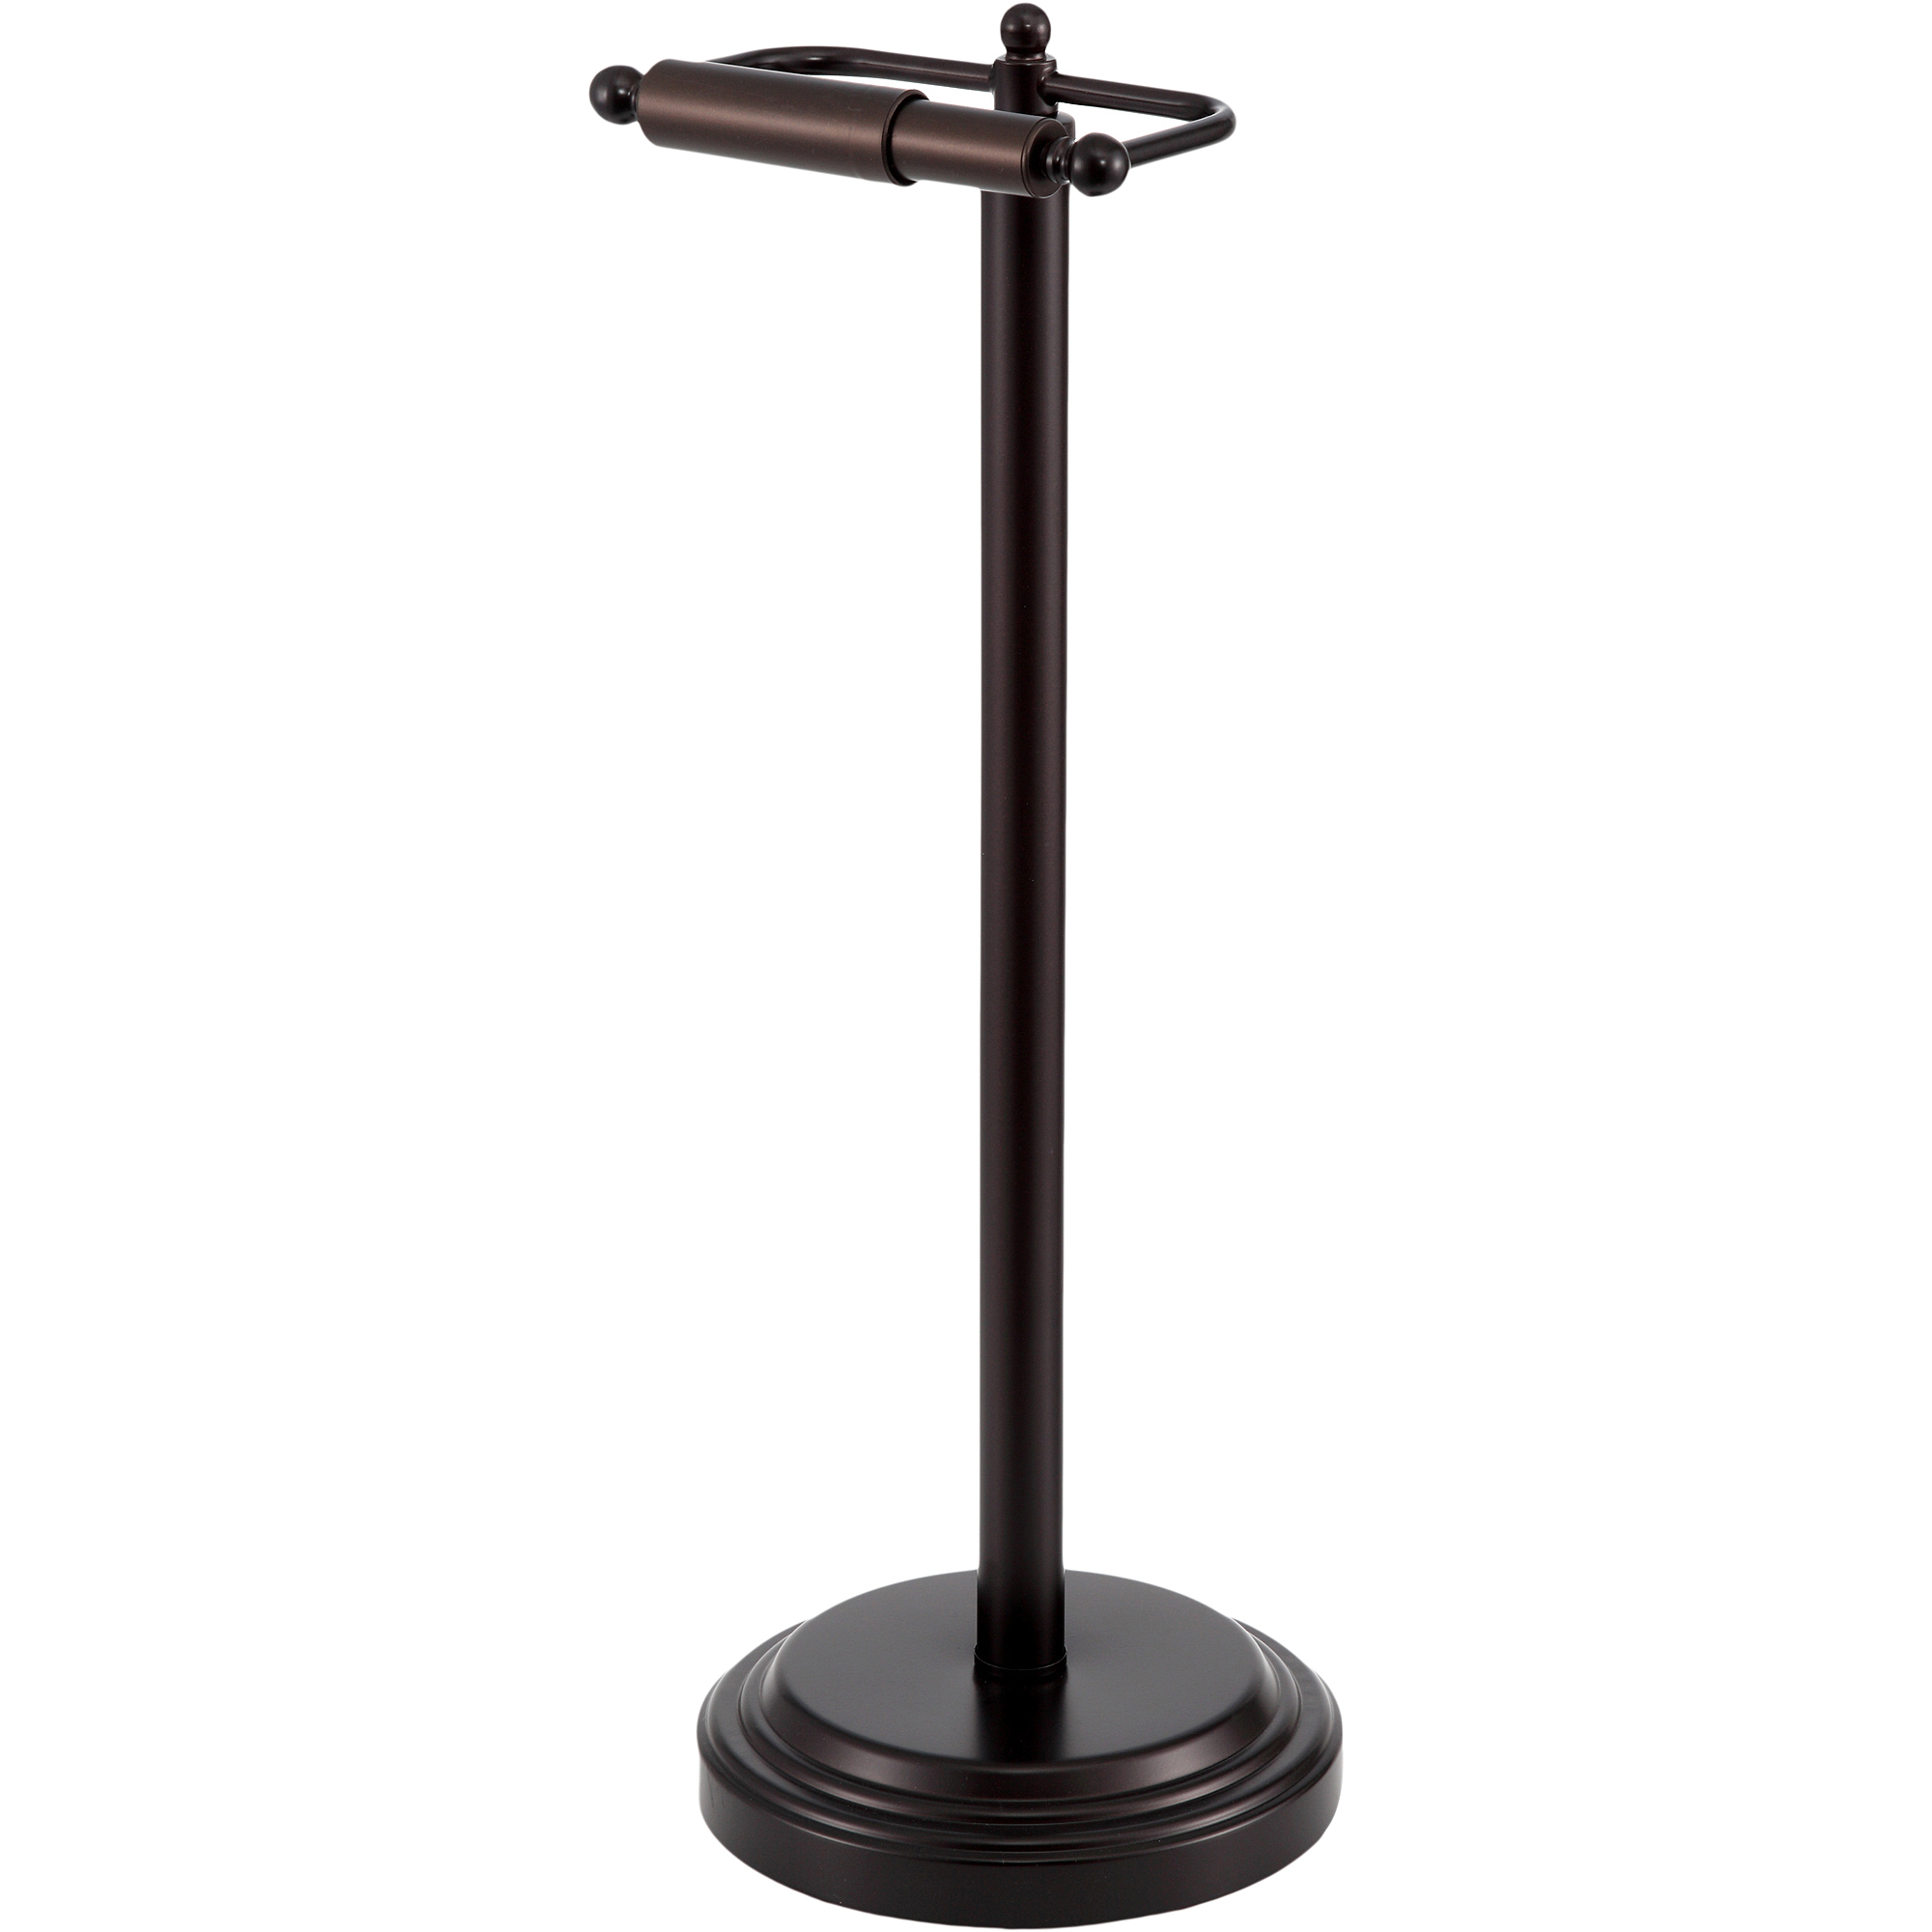 oil rubbed bronze toilet paper holder. Chapter Standing Toilet Paper Holder, Oil-Rubbed Bronze Finish Oil Rubbed Holder